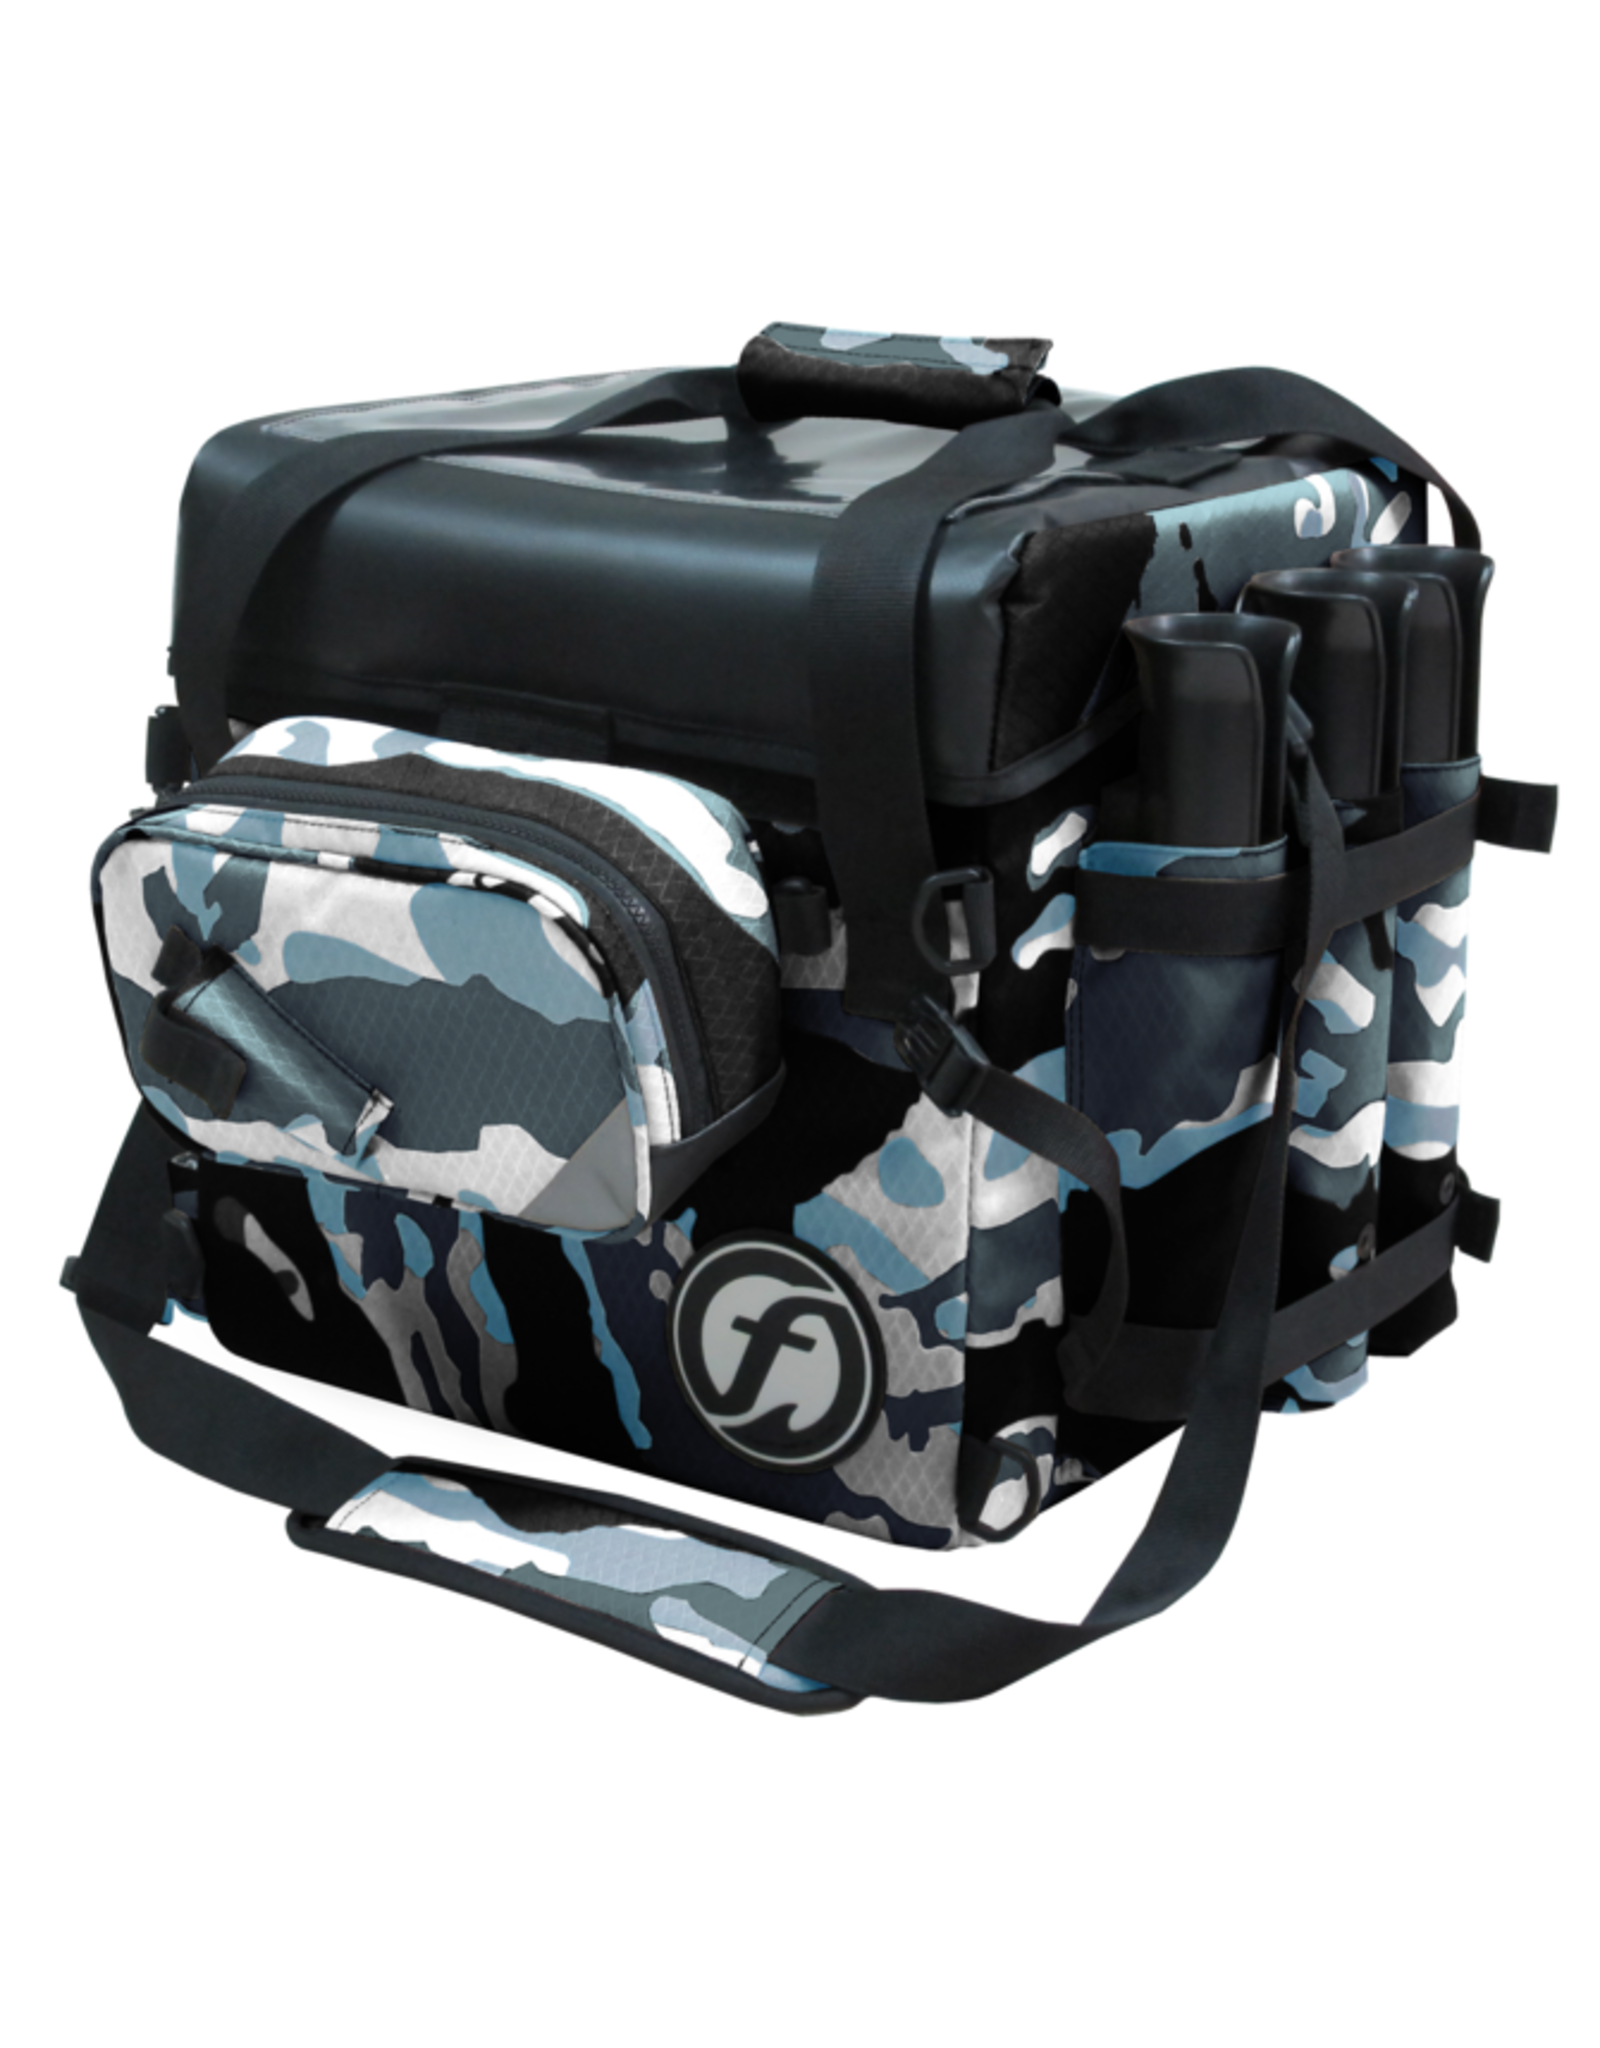 Feelfree Kayaks Feelfree Camo Fishing Crate Bag